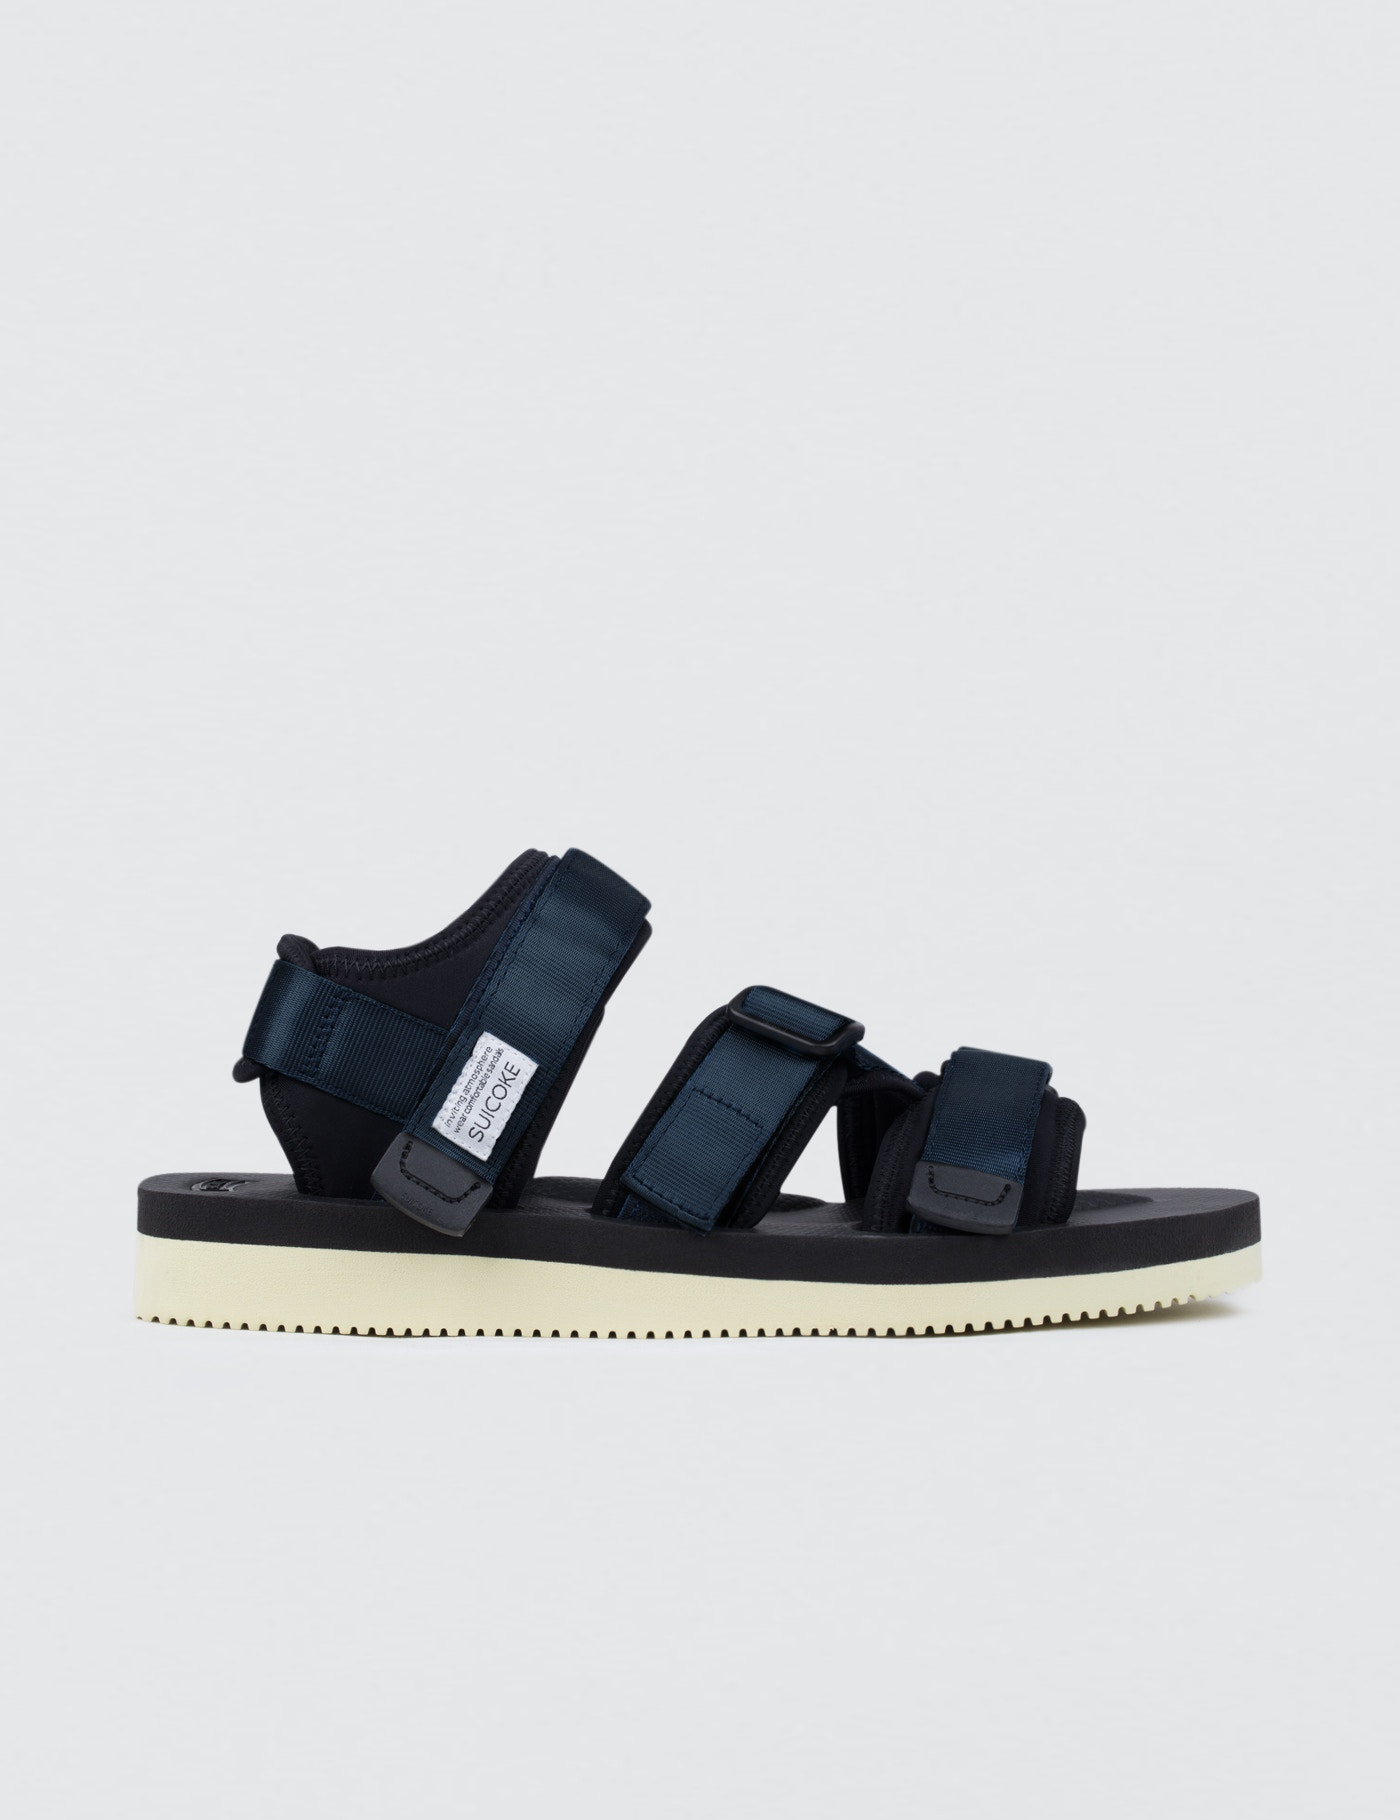 aea2153c2d4 Buy Original Suicoke Kisee-V Sandals at Indonesia